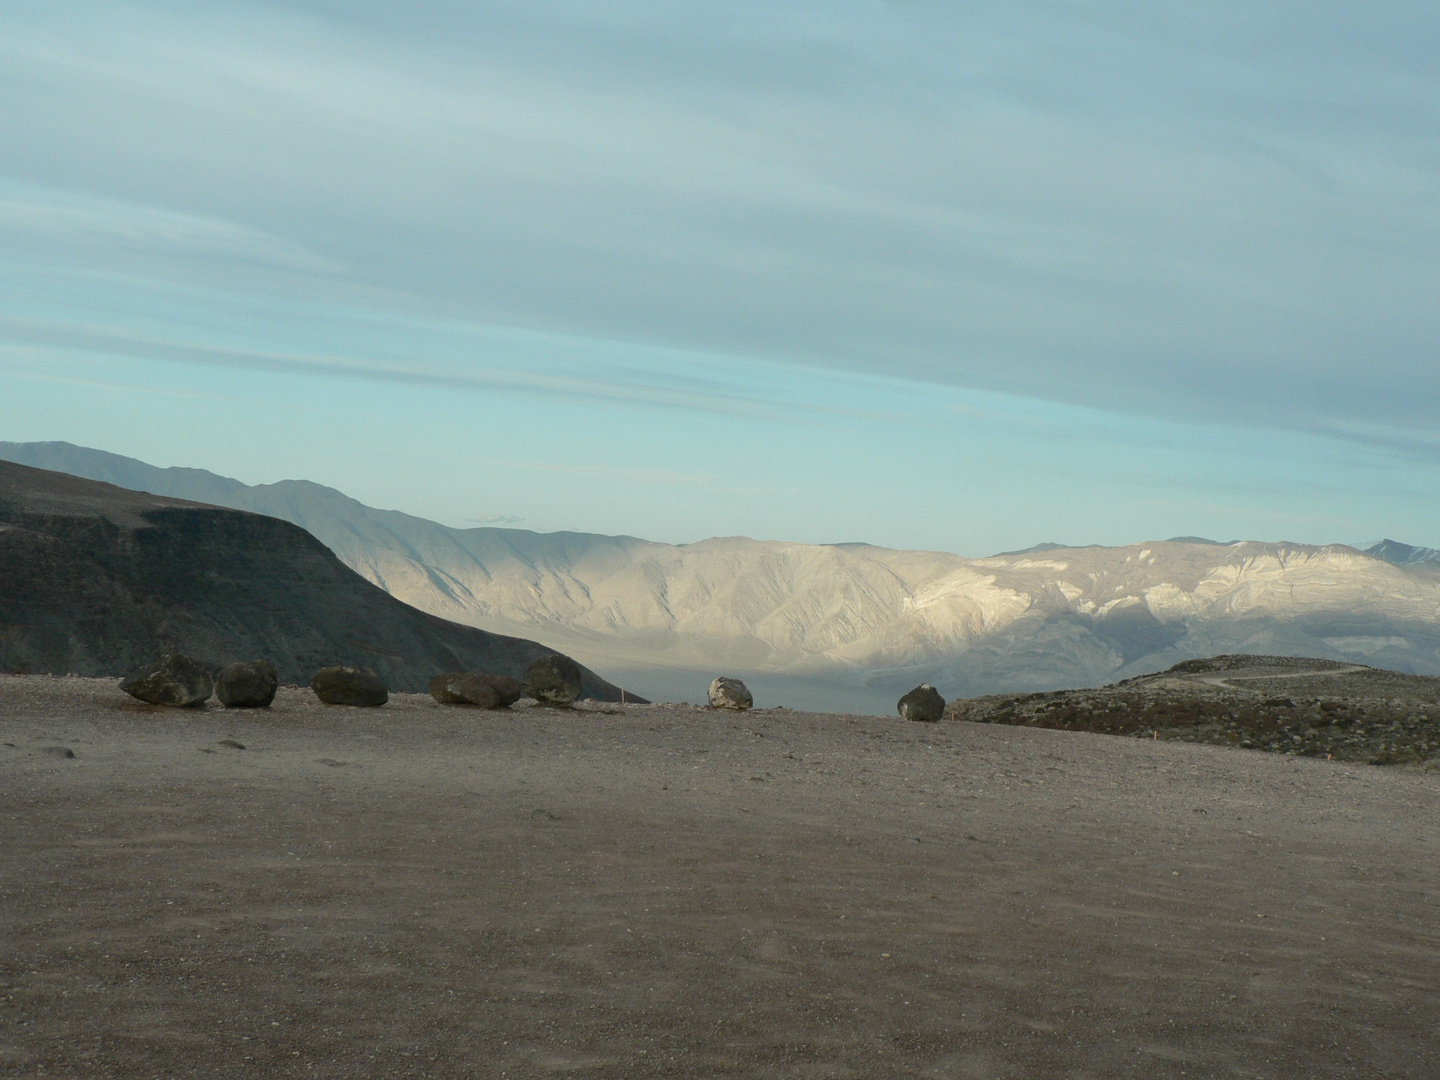 The Sand Dunes near Stovepipe Wells (2)